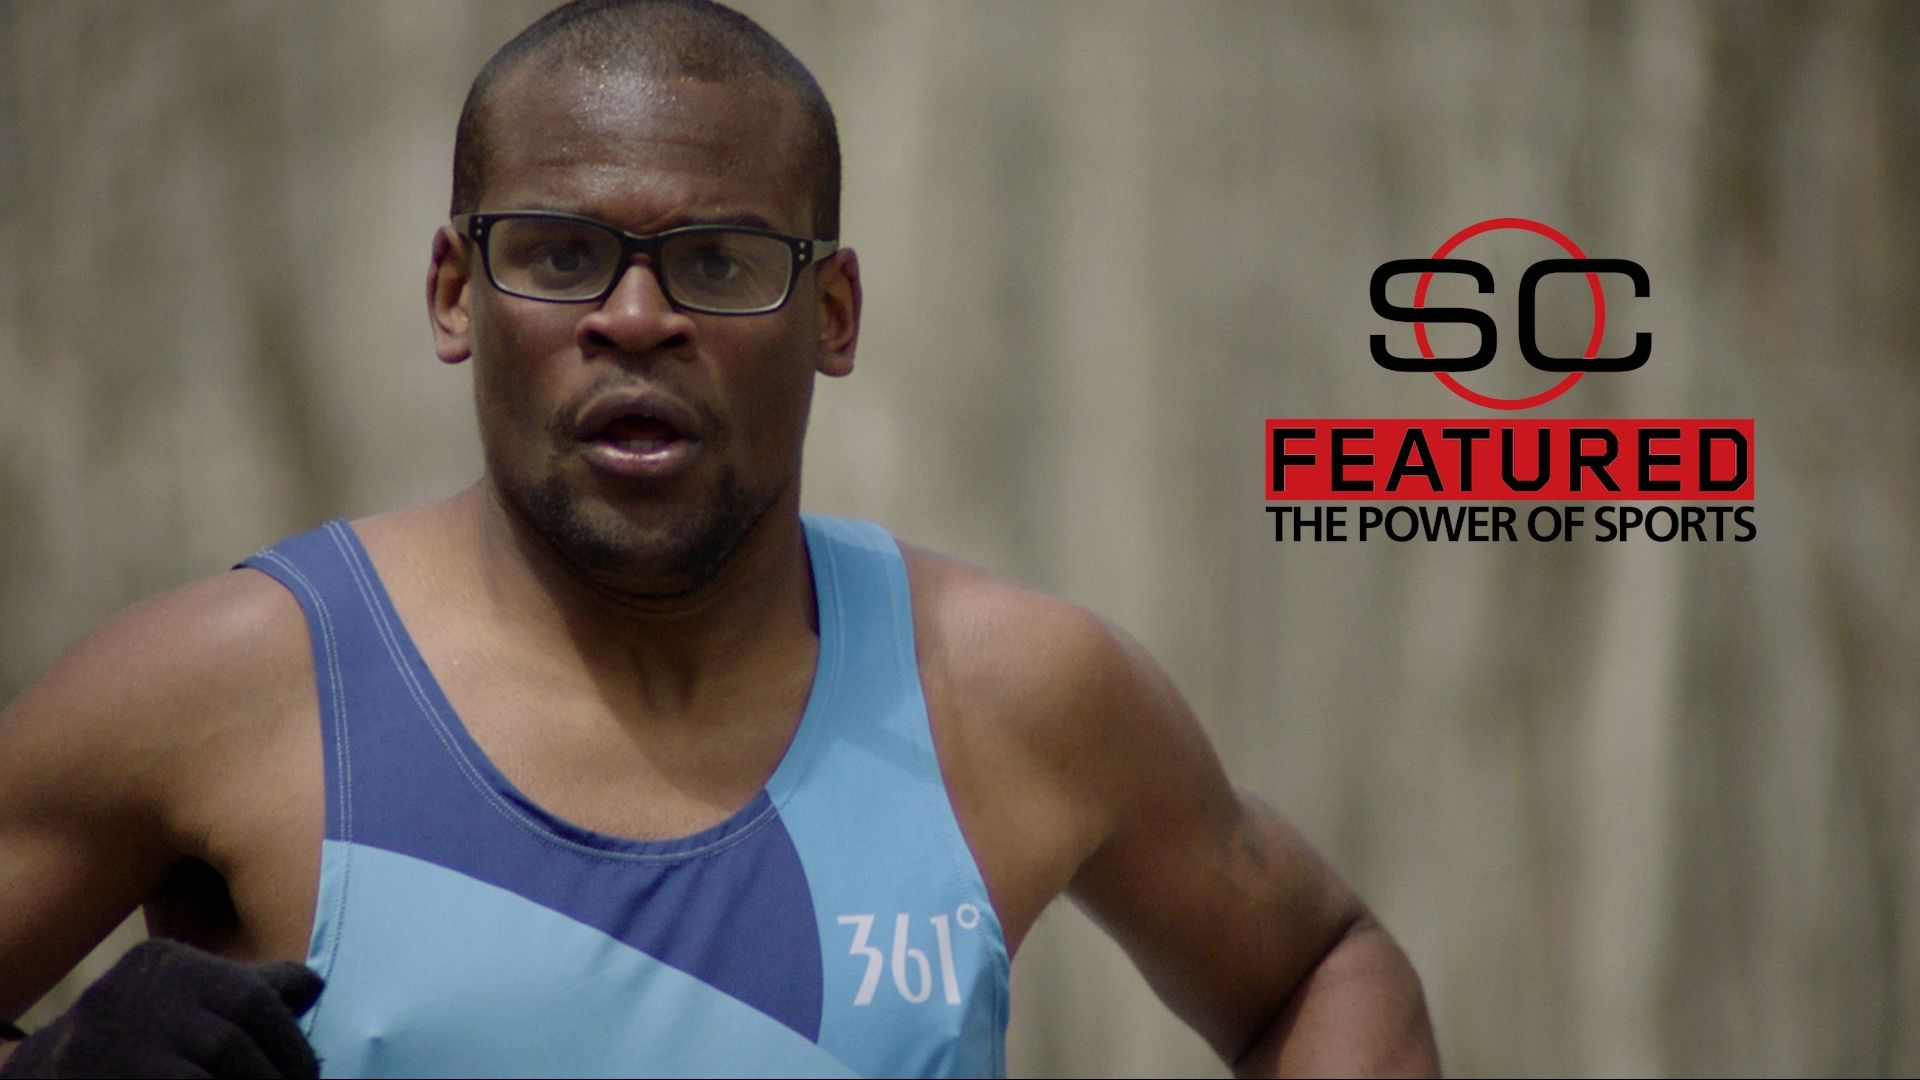 Special Olympics athlete Andrew Peterson was born to run